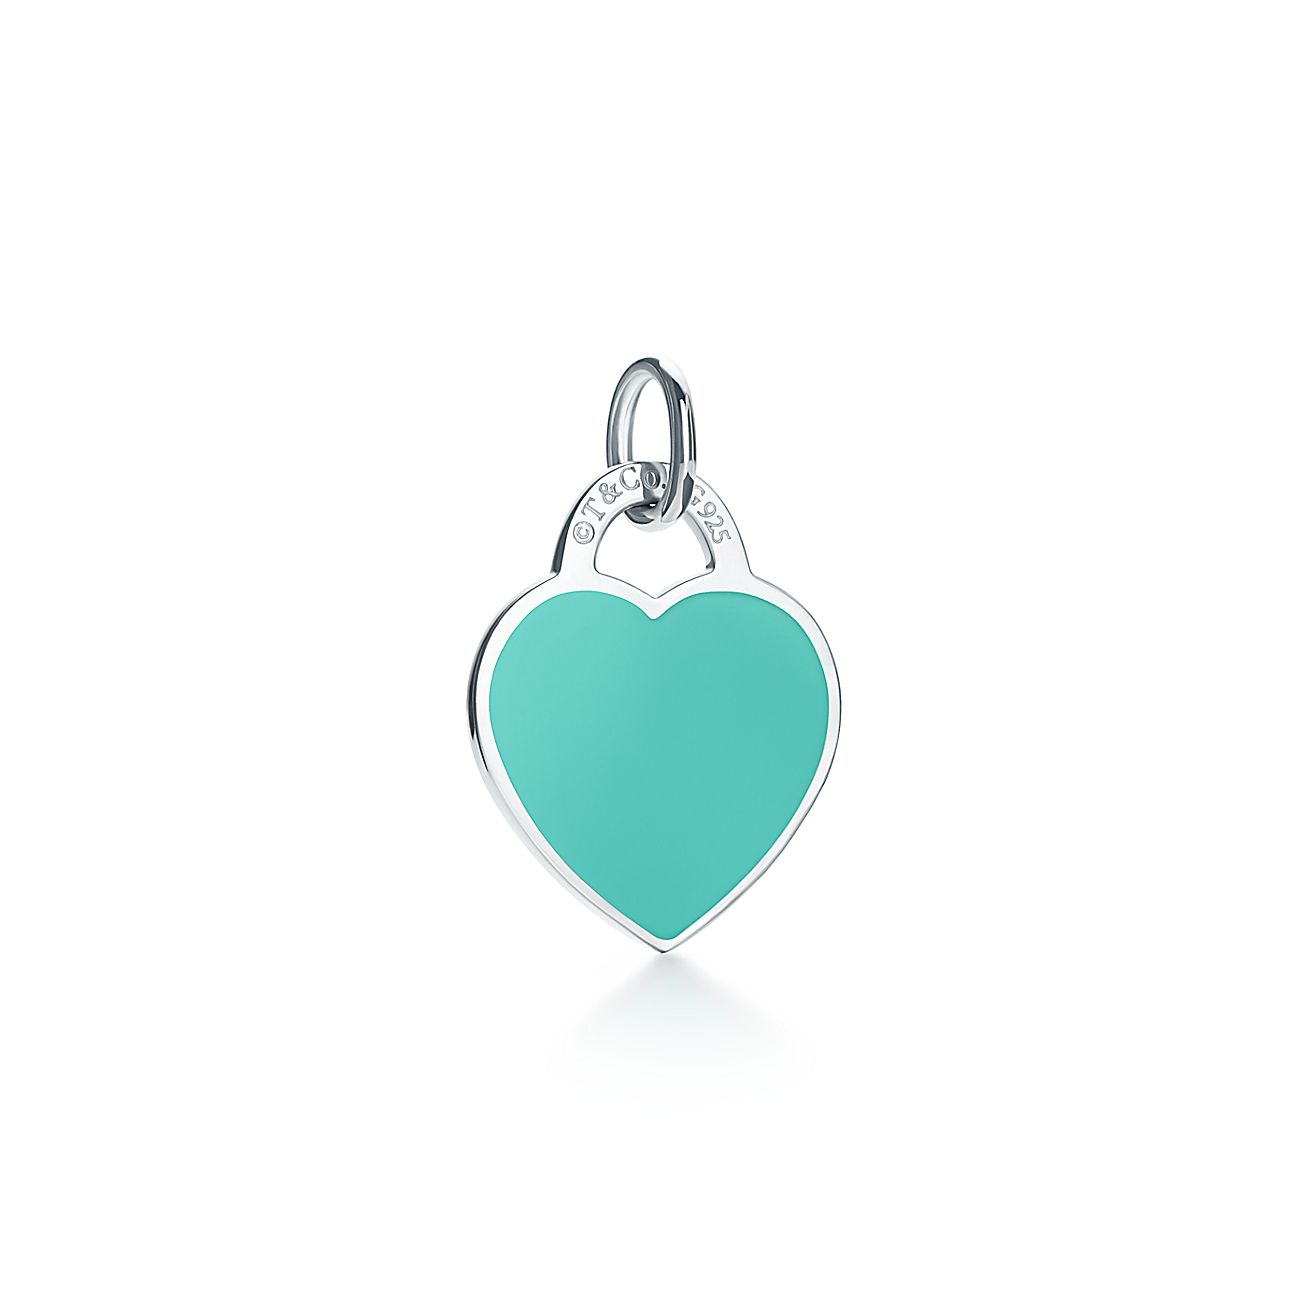 Return To TiffanyR Heart Tag Charm In Sterling Silver With Enamel Finish Small